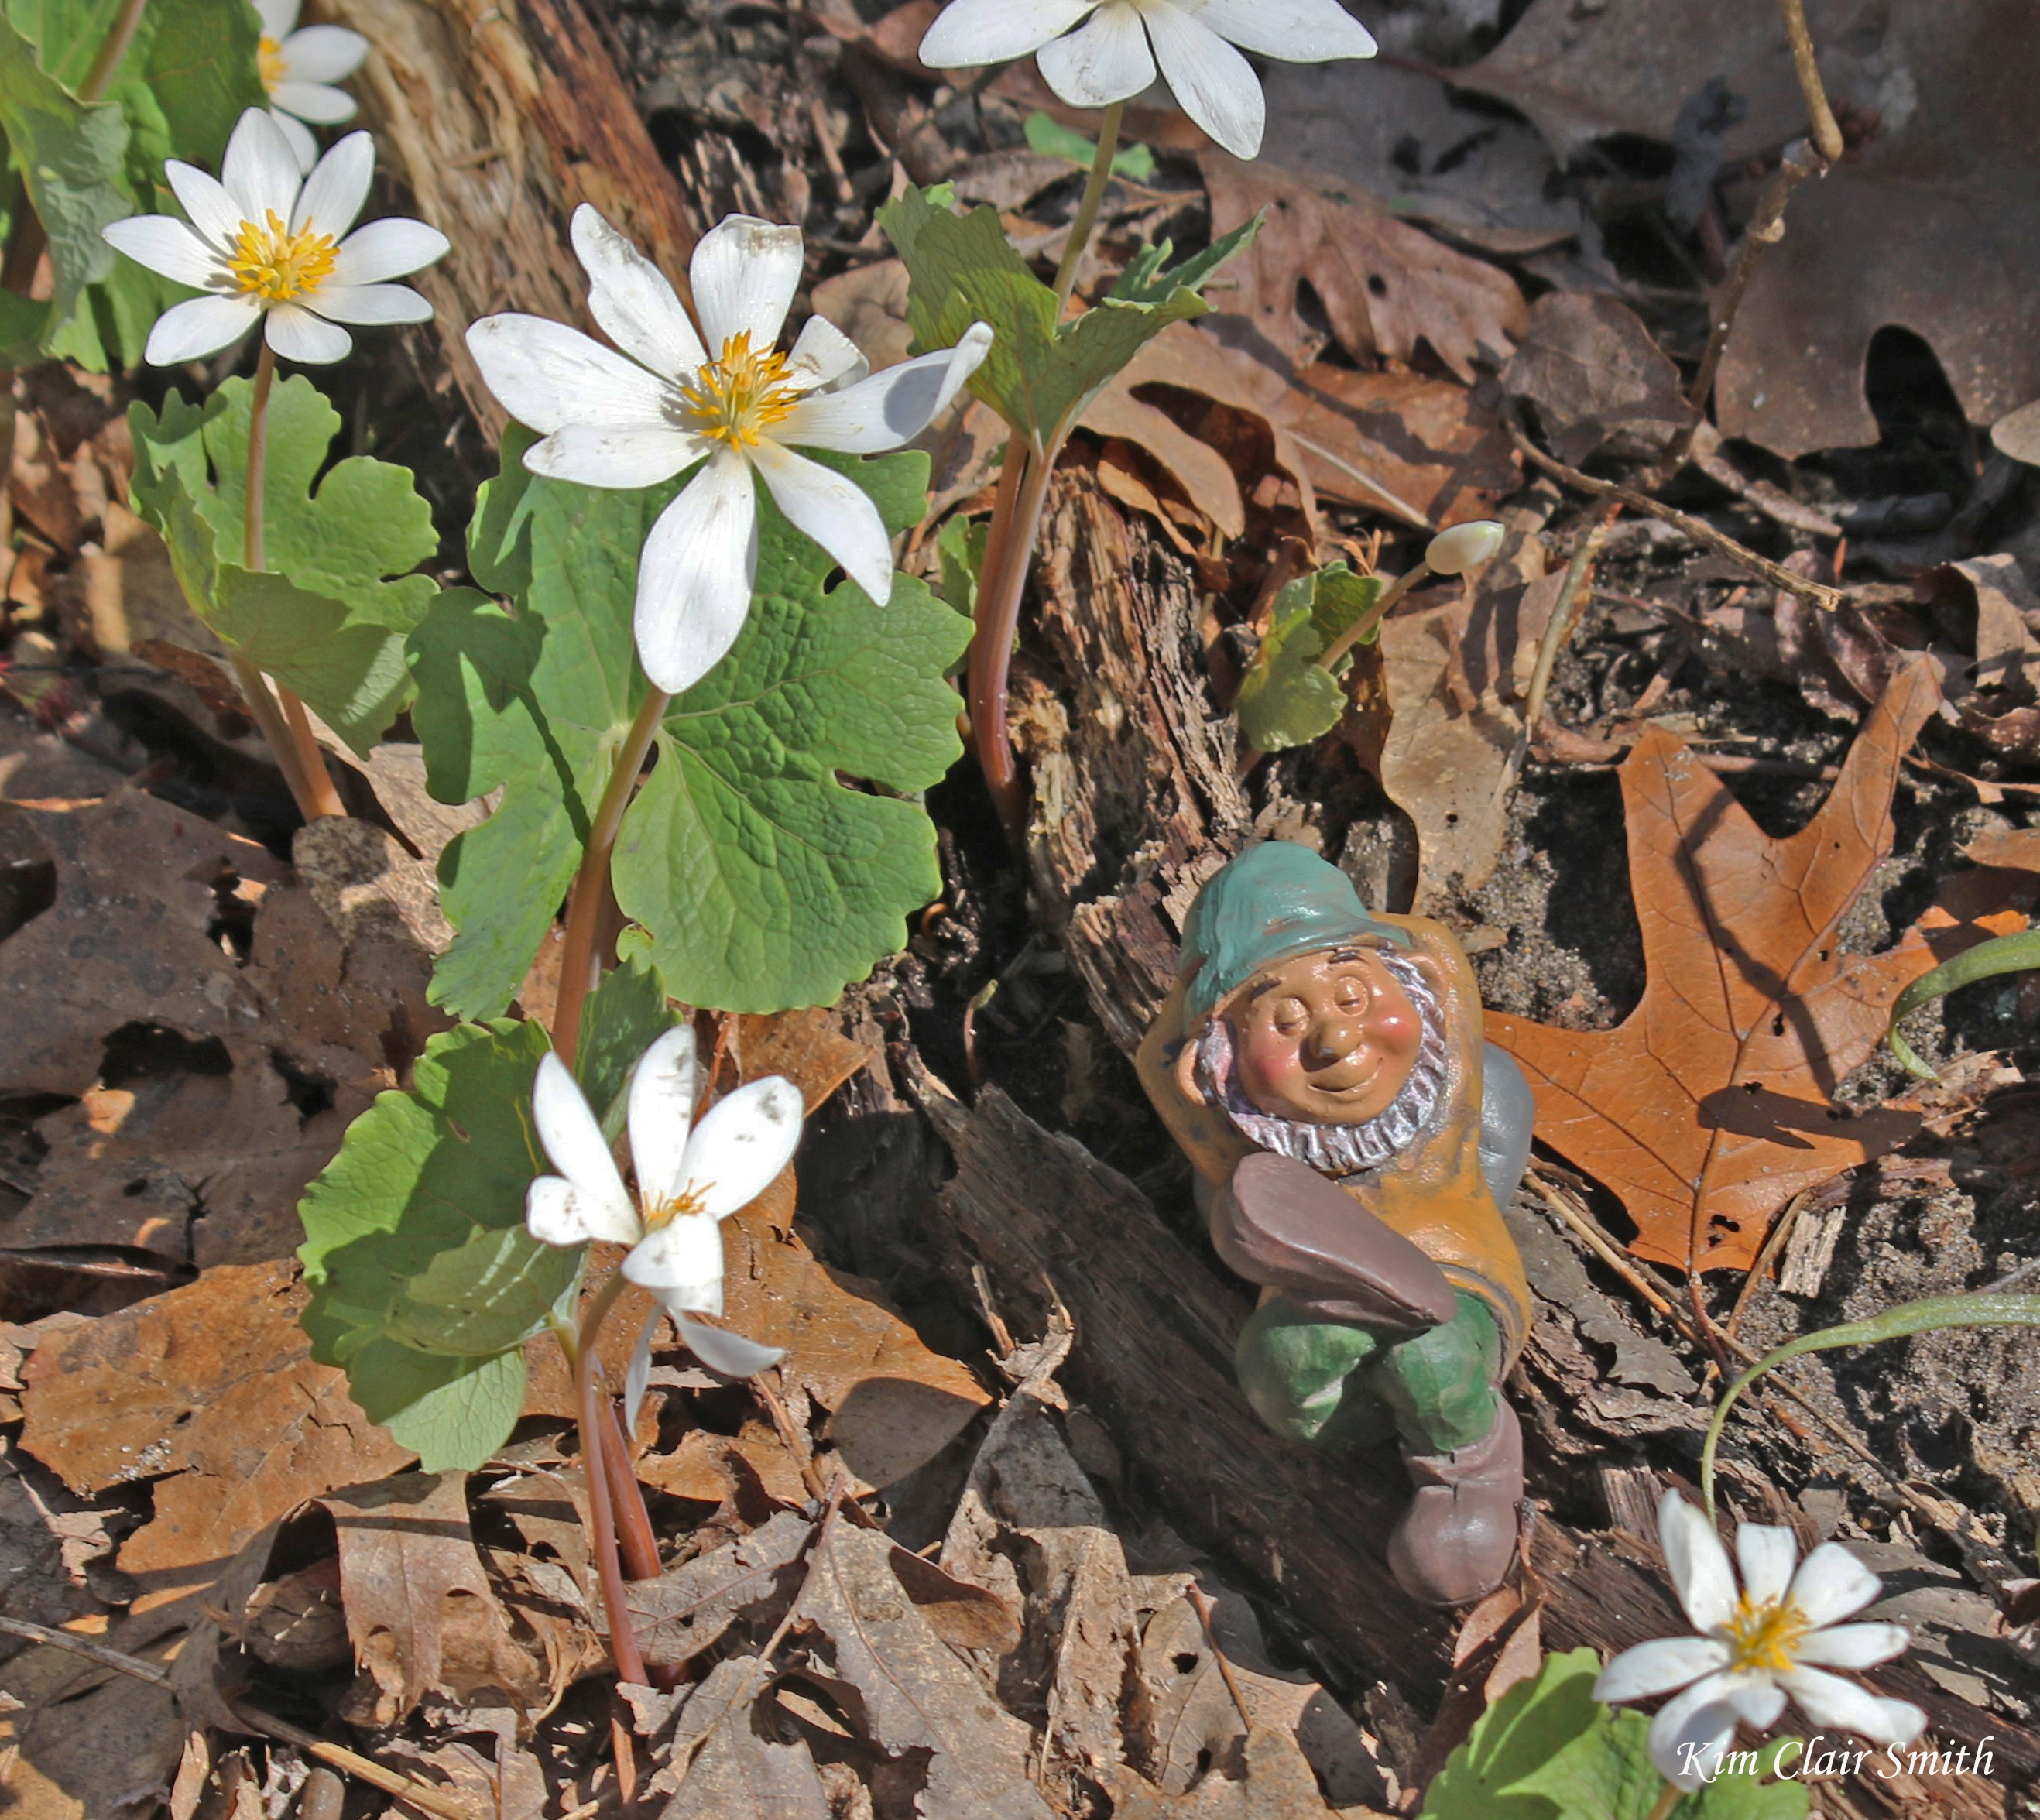 Gnome napping under bloodroot - blog